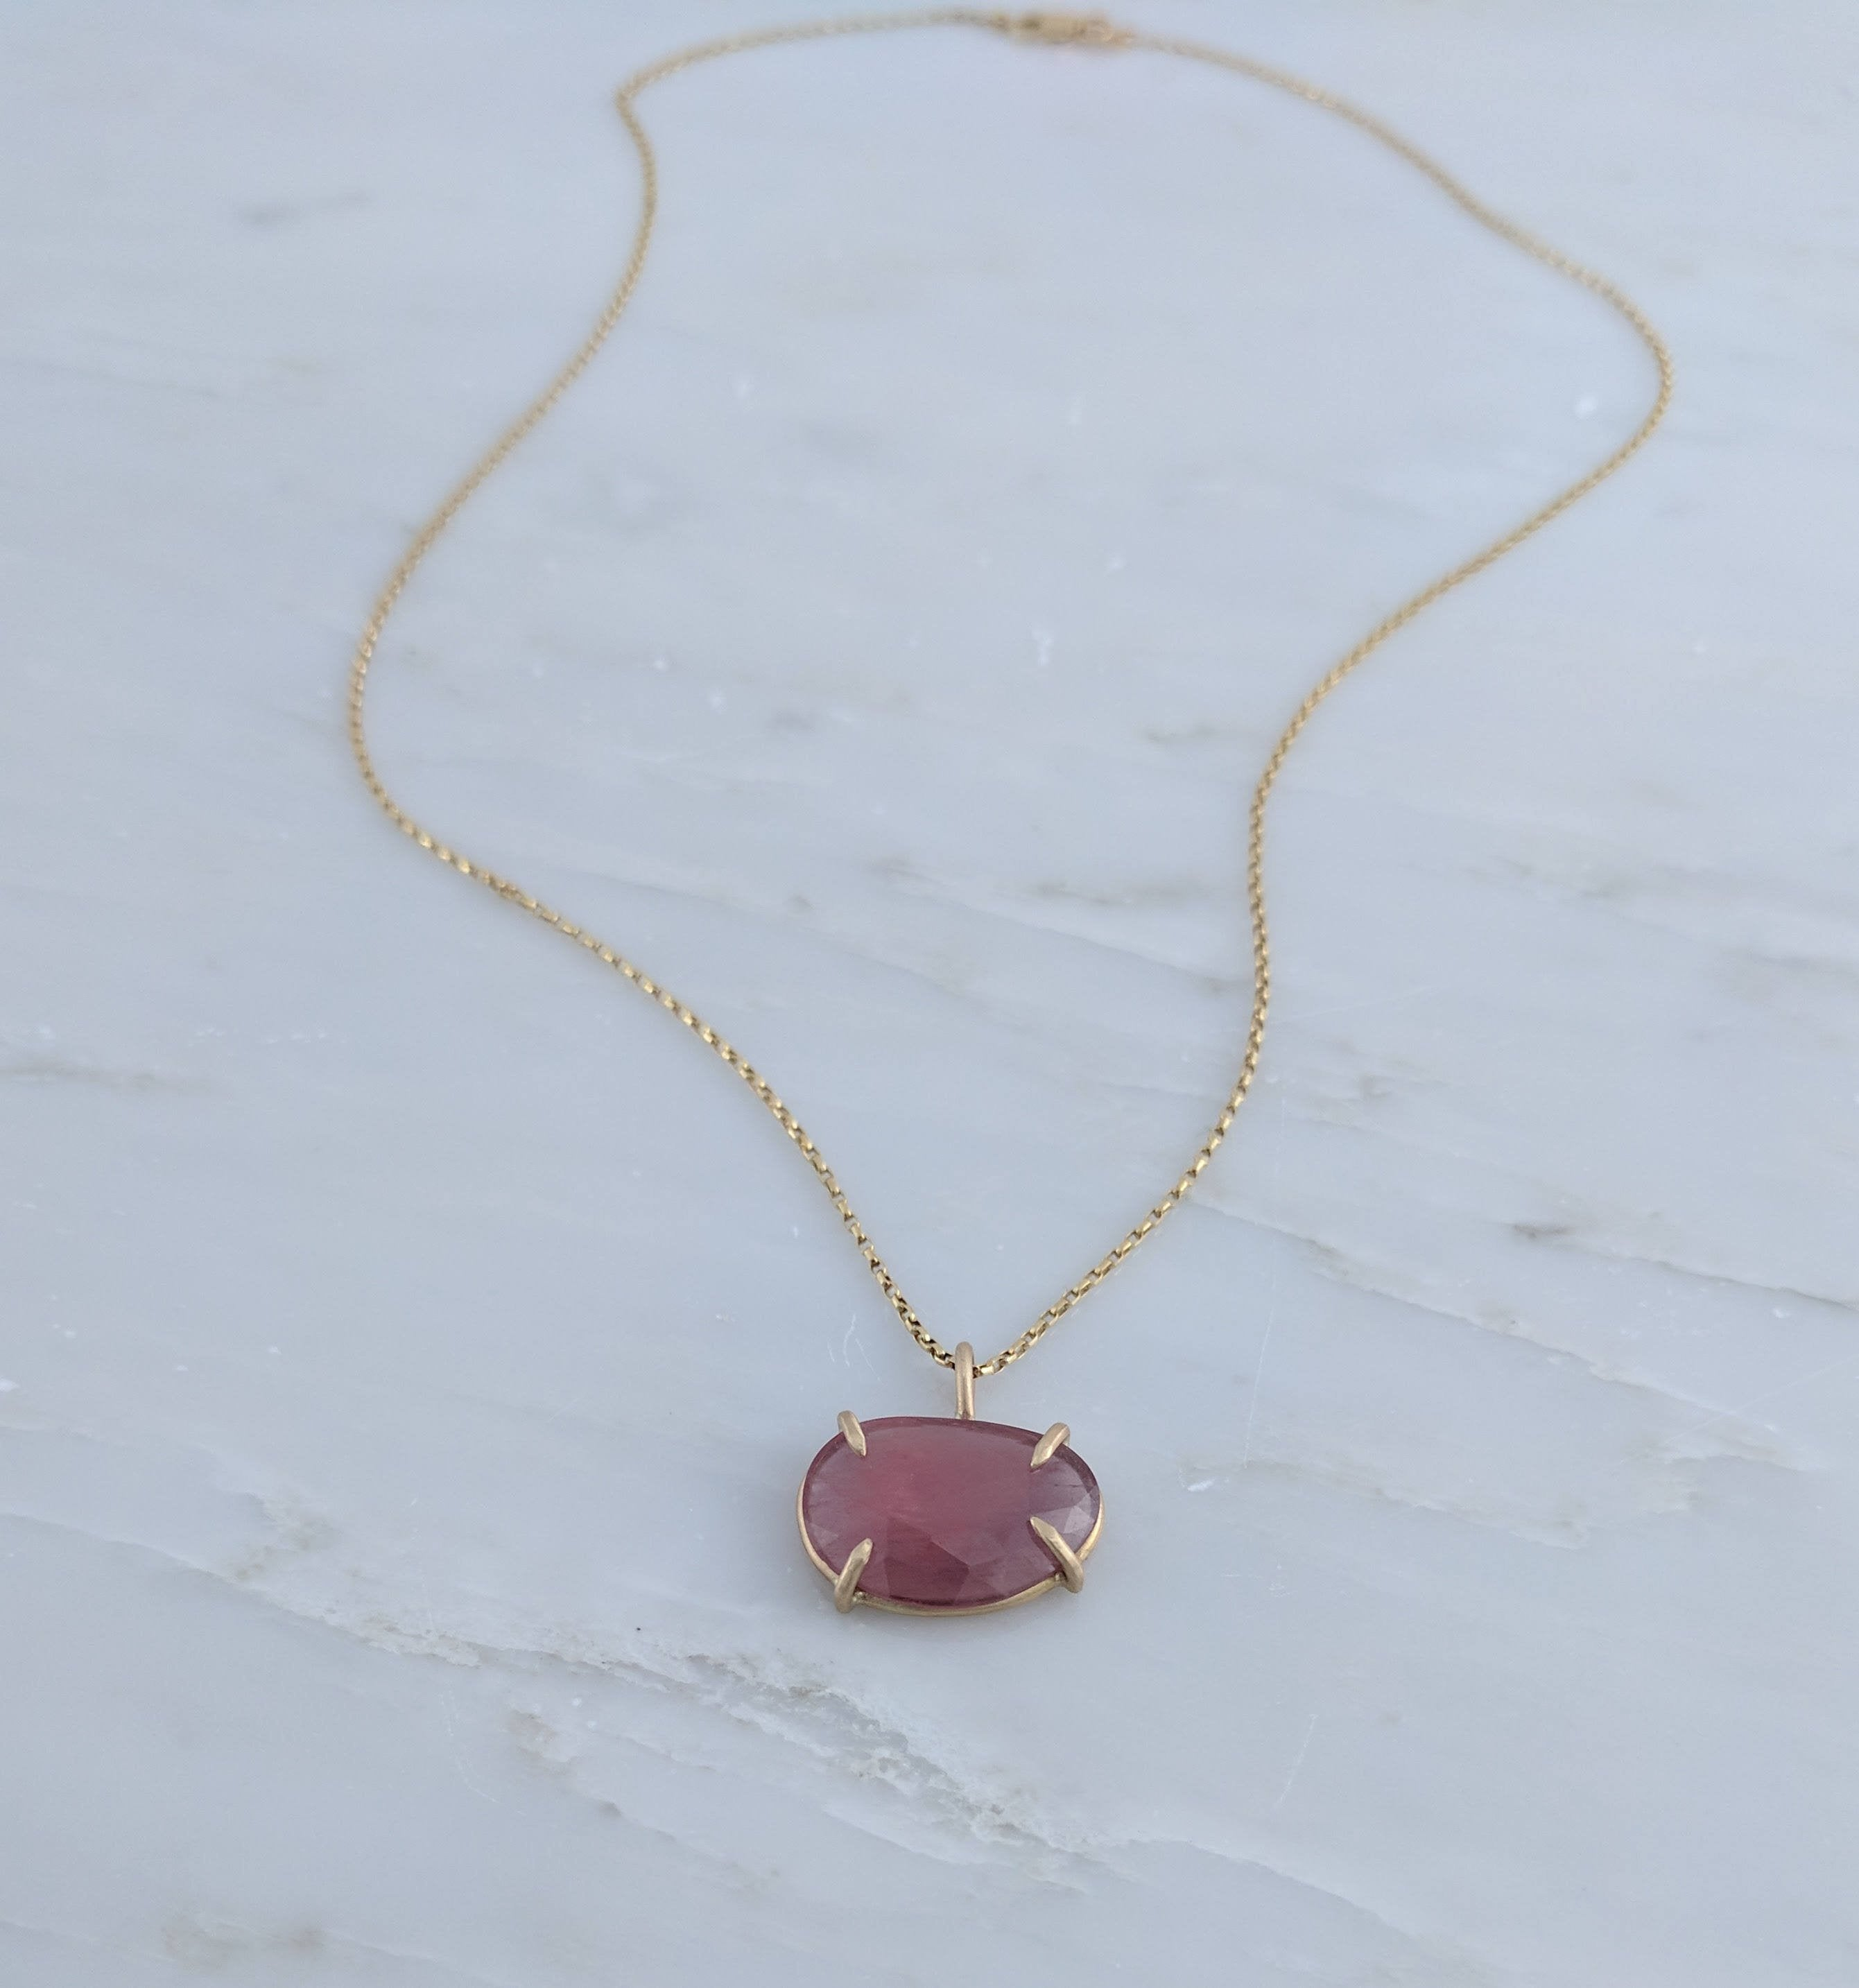 Rose Cut Sapphire Necklace in 14K Gold